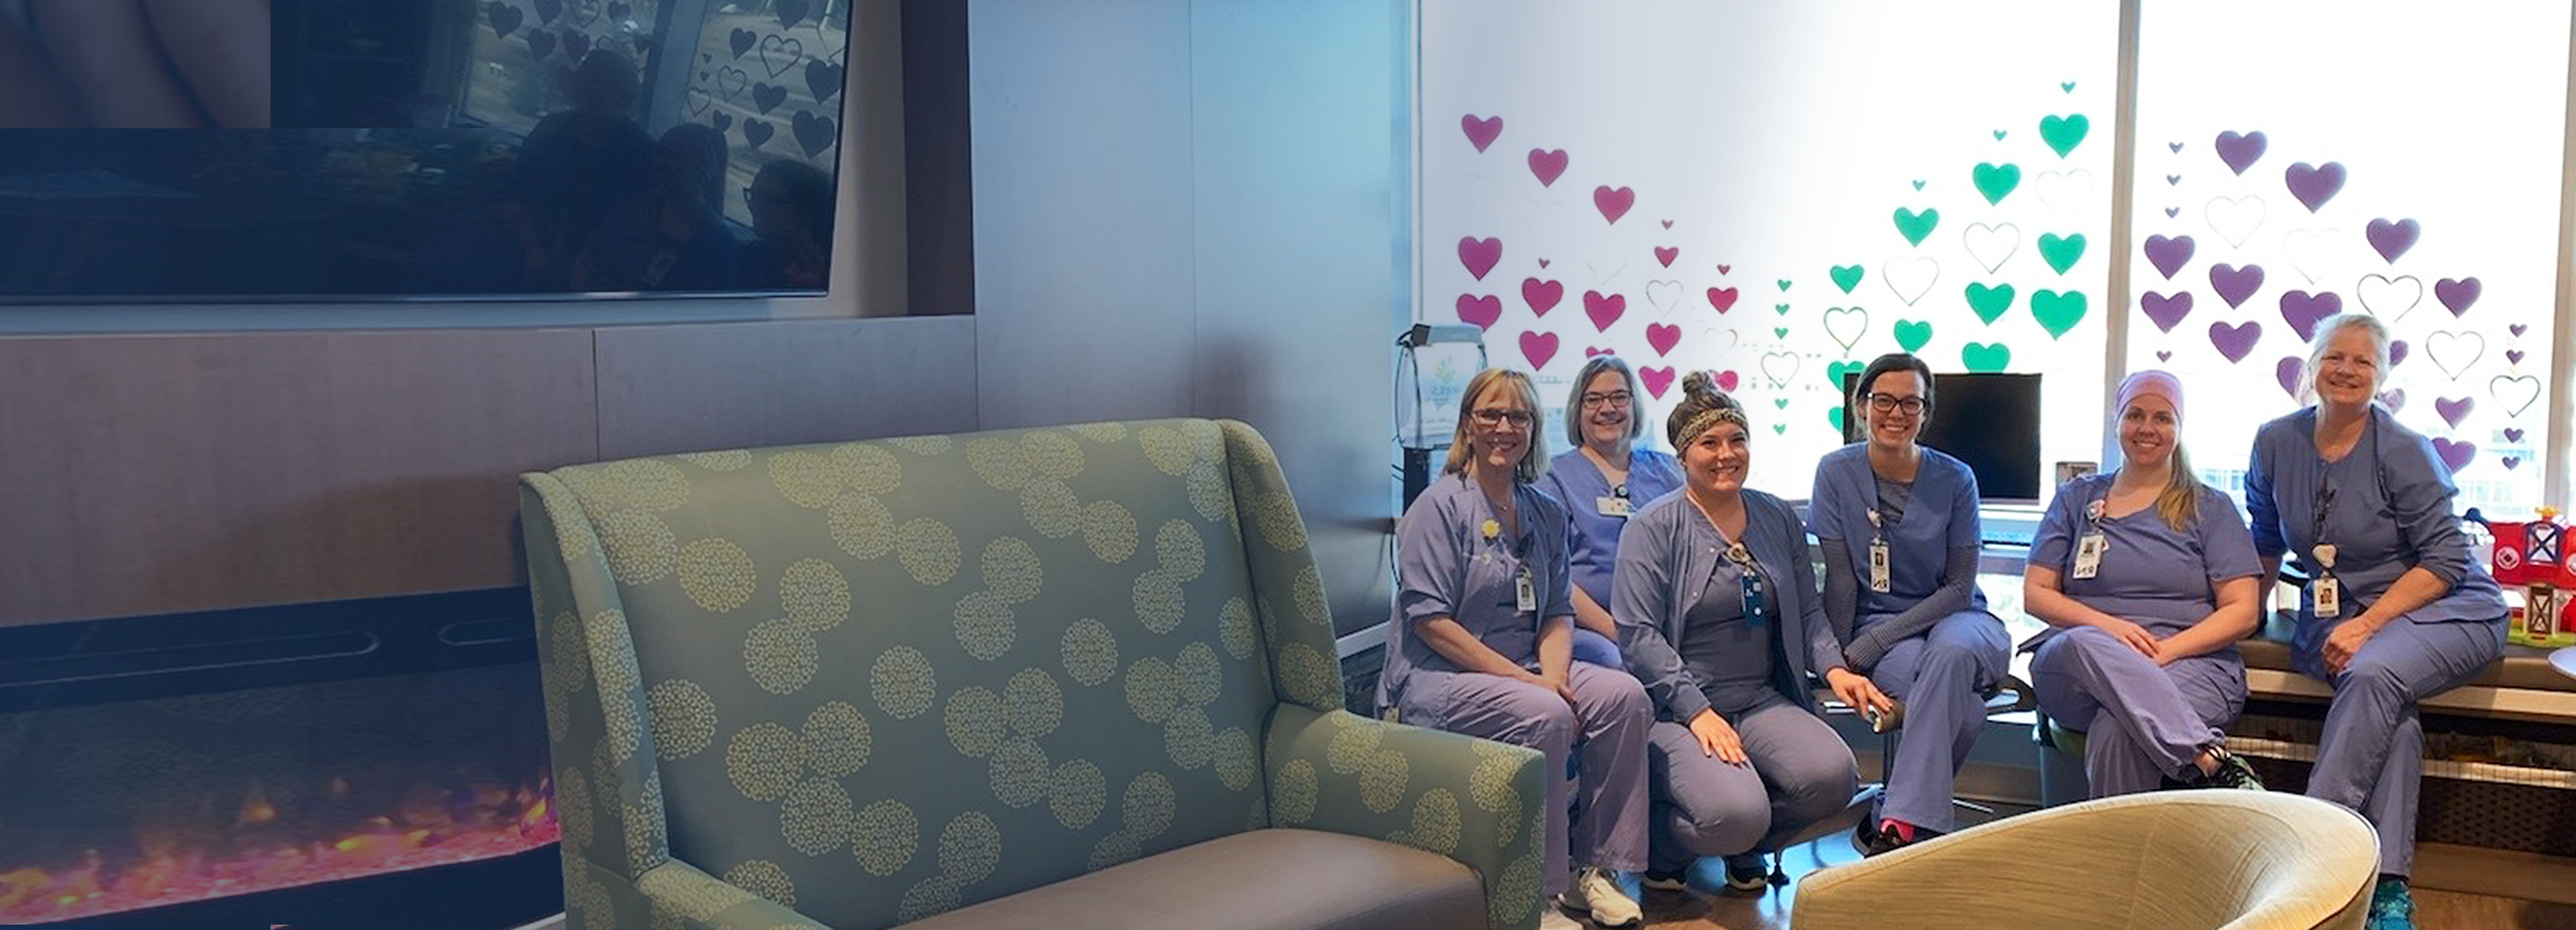 Pediatric nurses sit for the camera, lit by the window behind them decorated with multiple colors of heart symbols, furniture in soft focus in front